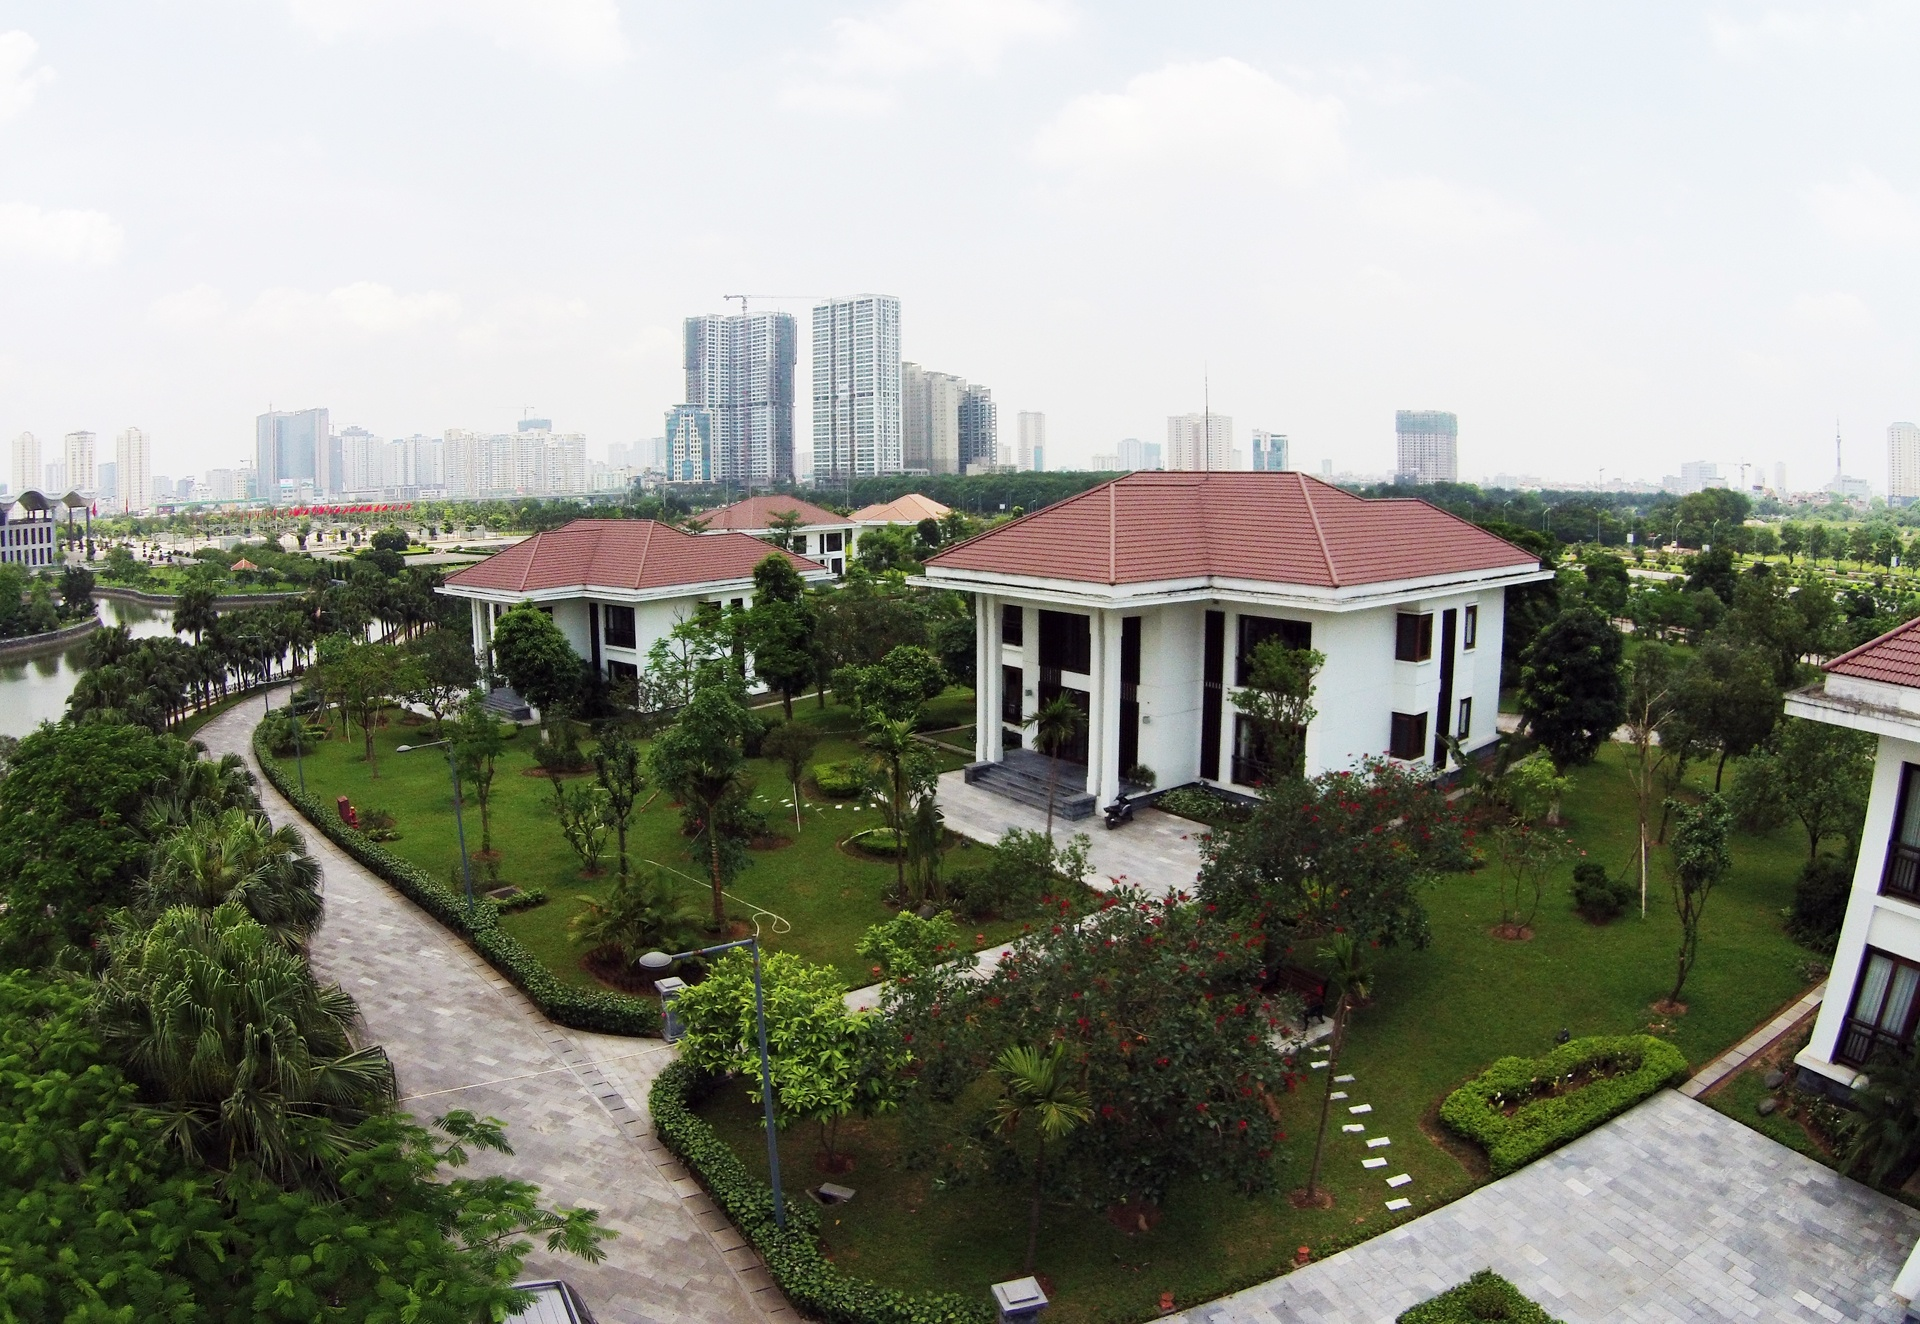 biet thu trong trung tam Hoi nghi quoc gia anh 5